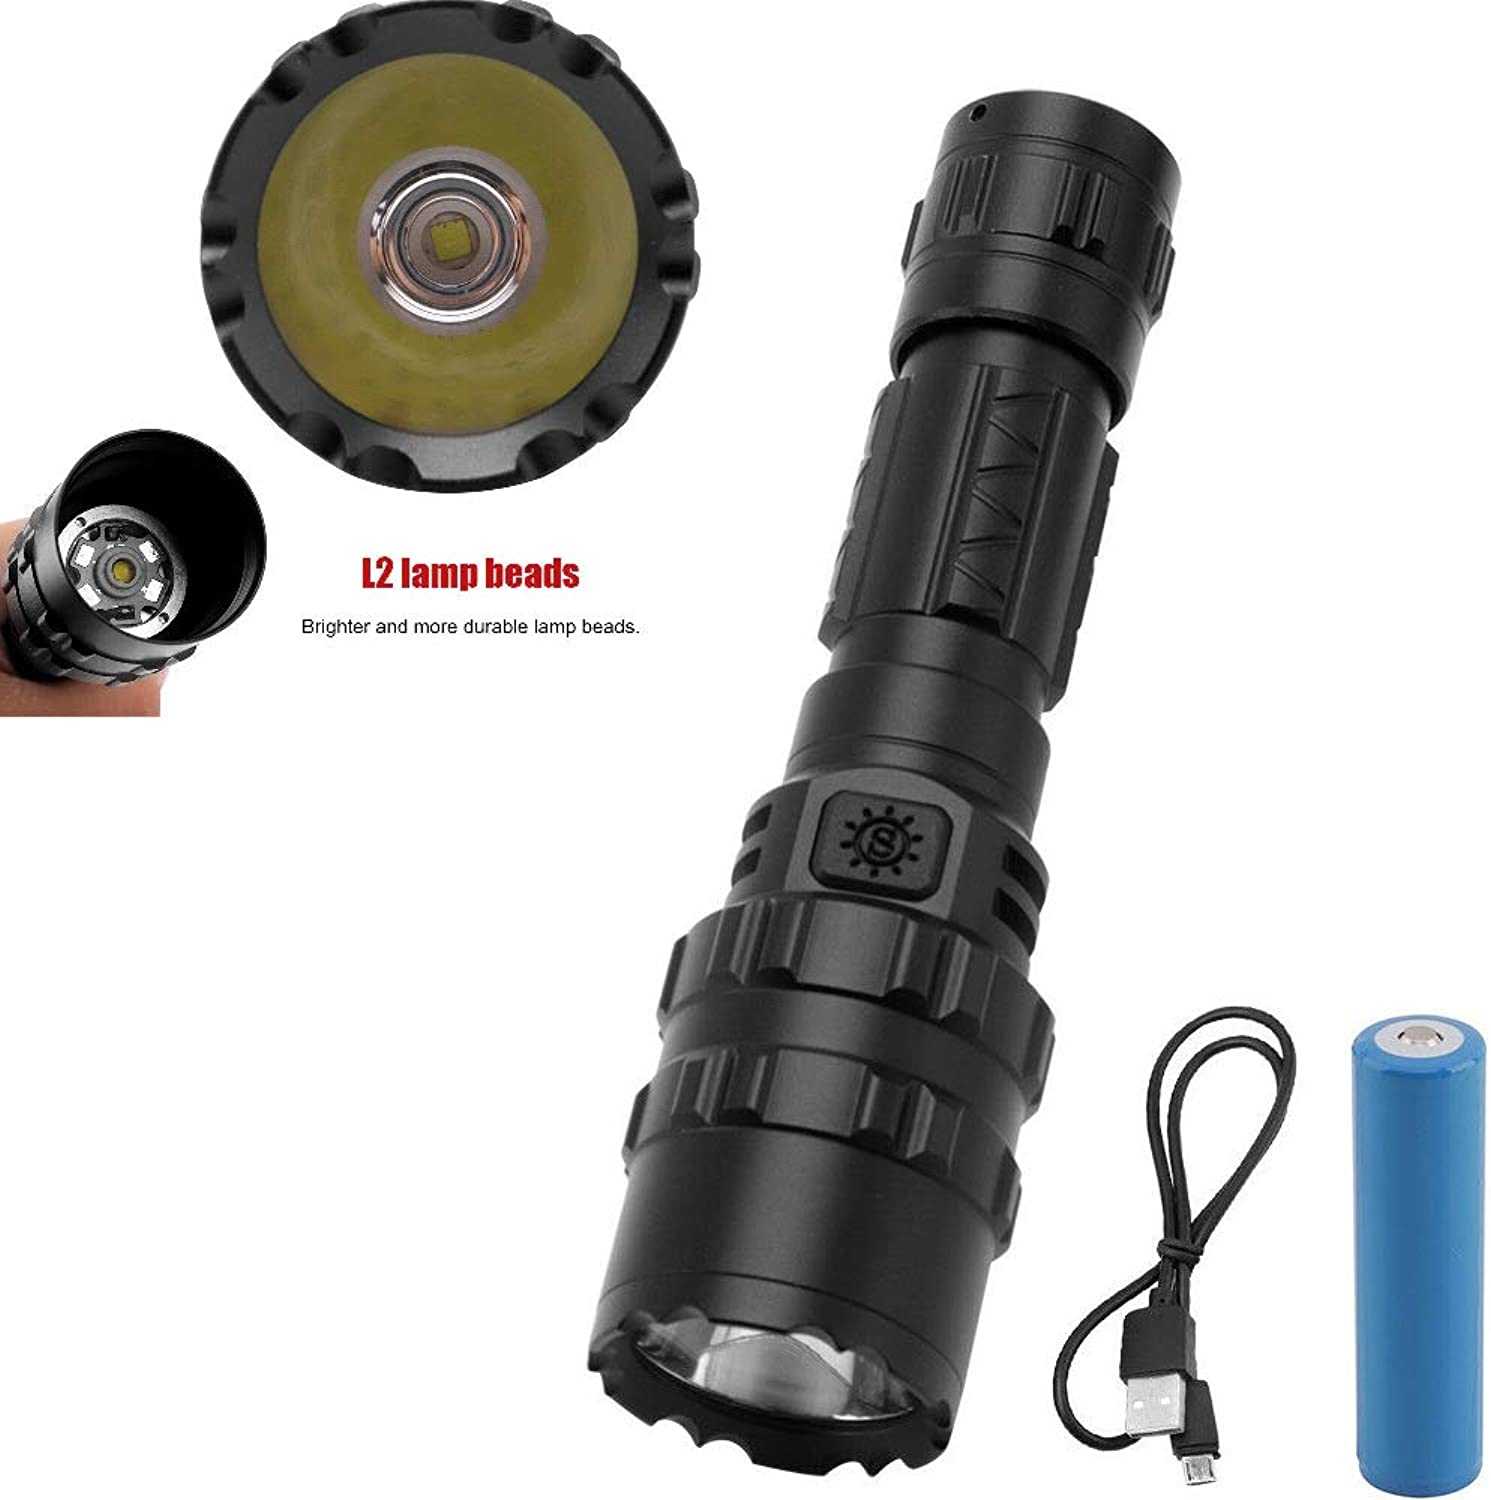 2019 Brightest Outdoor Rechargeable LED Torch 8000 Lumens Pocket Torches, 5 Modes Waterproof Handheld Flashlight for Camping Outdoor Sports with 18650 Battery